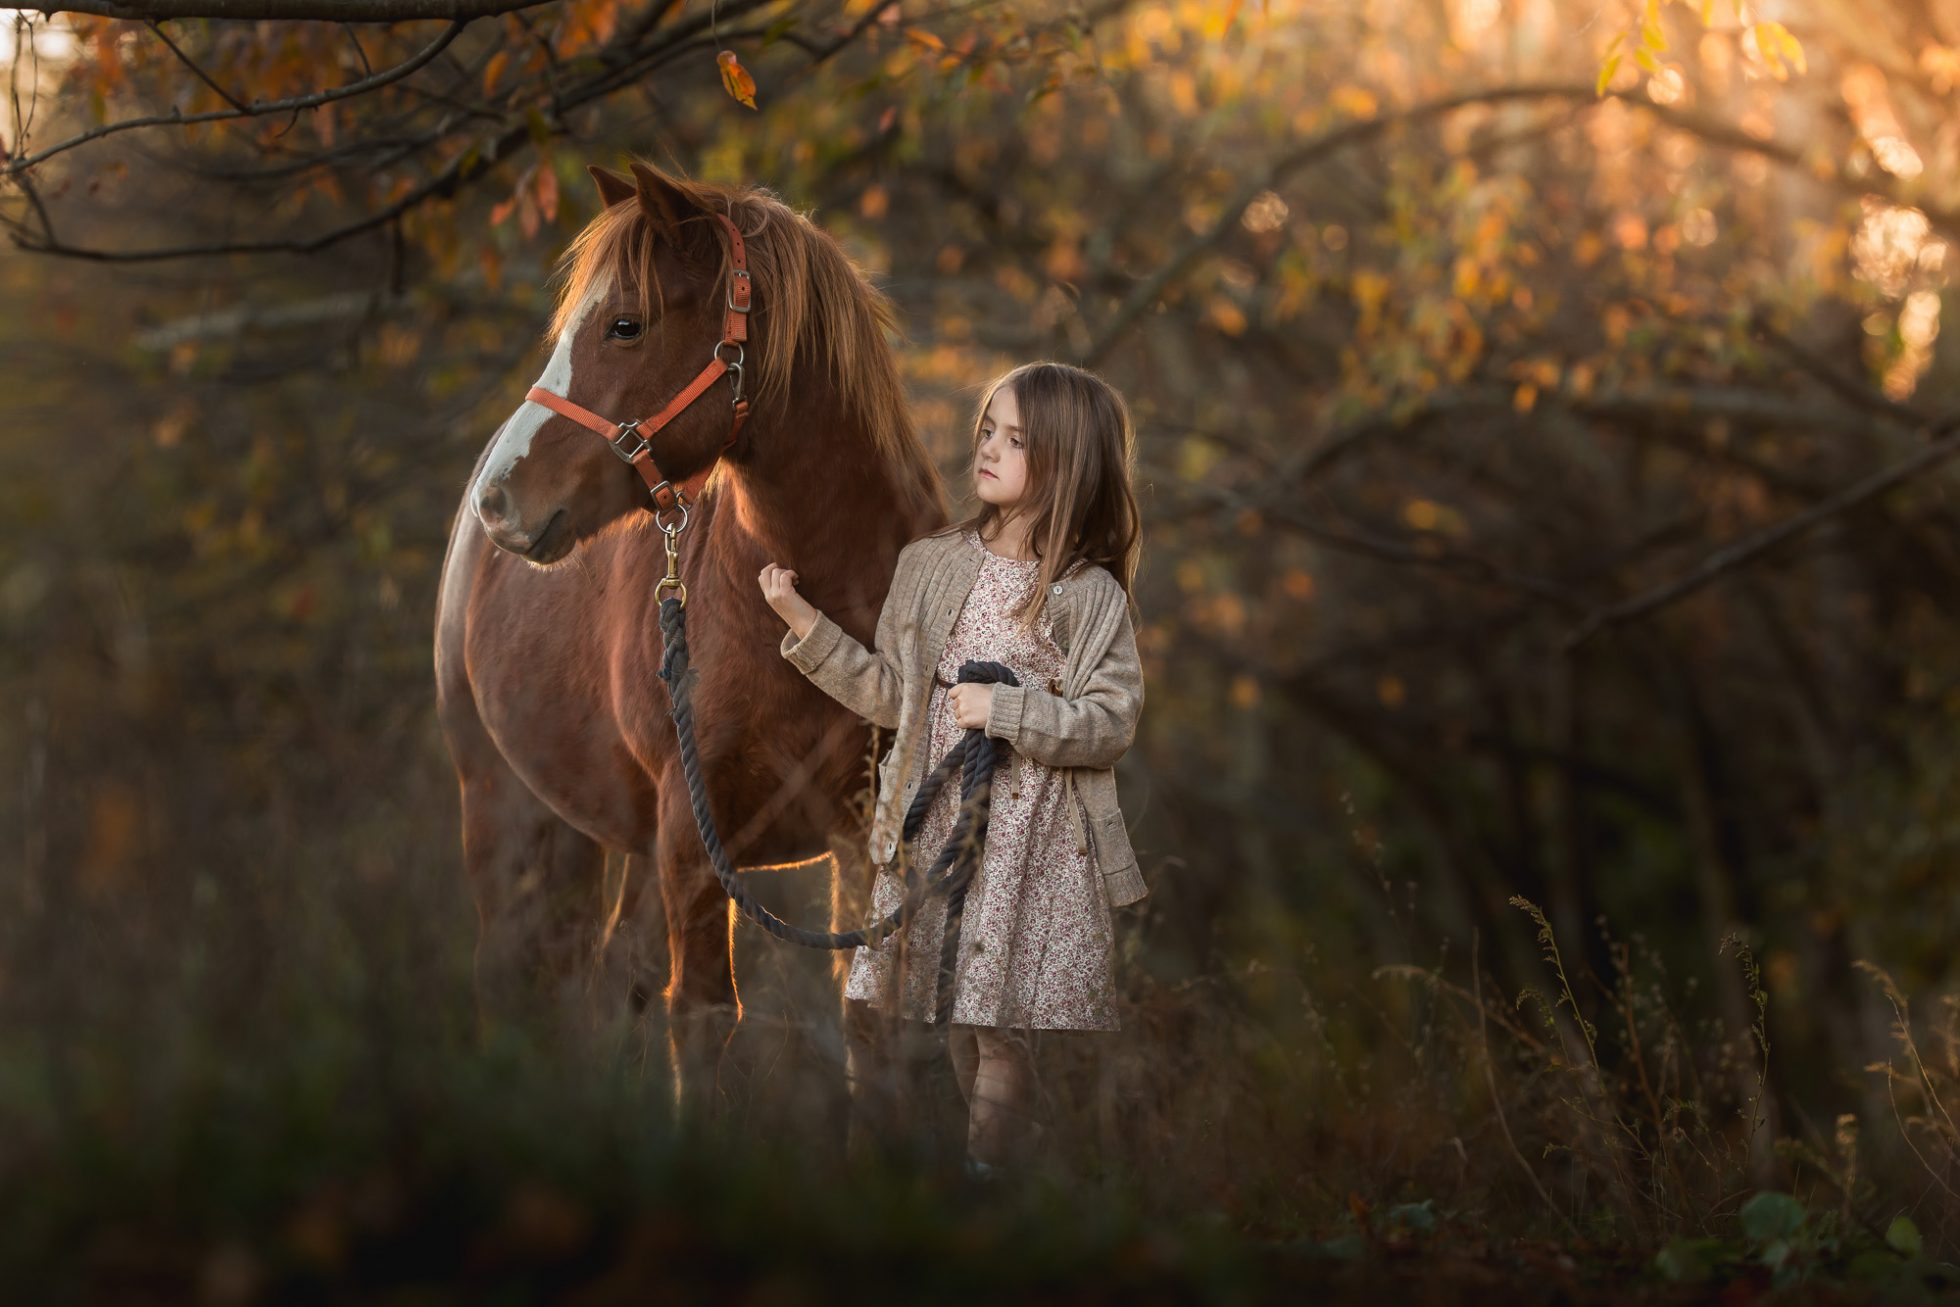 Fine art Portrait of a little girl and her pony in the fall, photographed by Clare Ahalt Photography, a fine art portrait photographer located in Mid Maryland, serving Maryland, Washington DC, Northern Virginia.  available for travel.